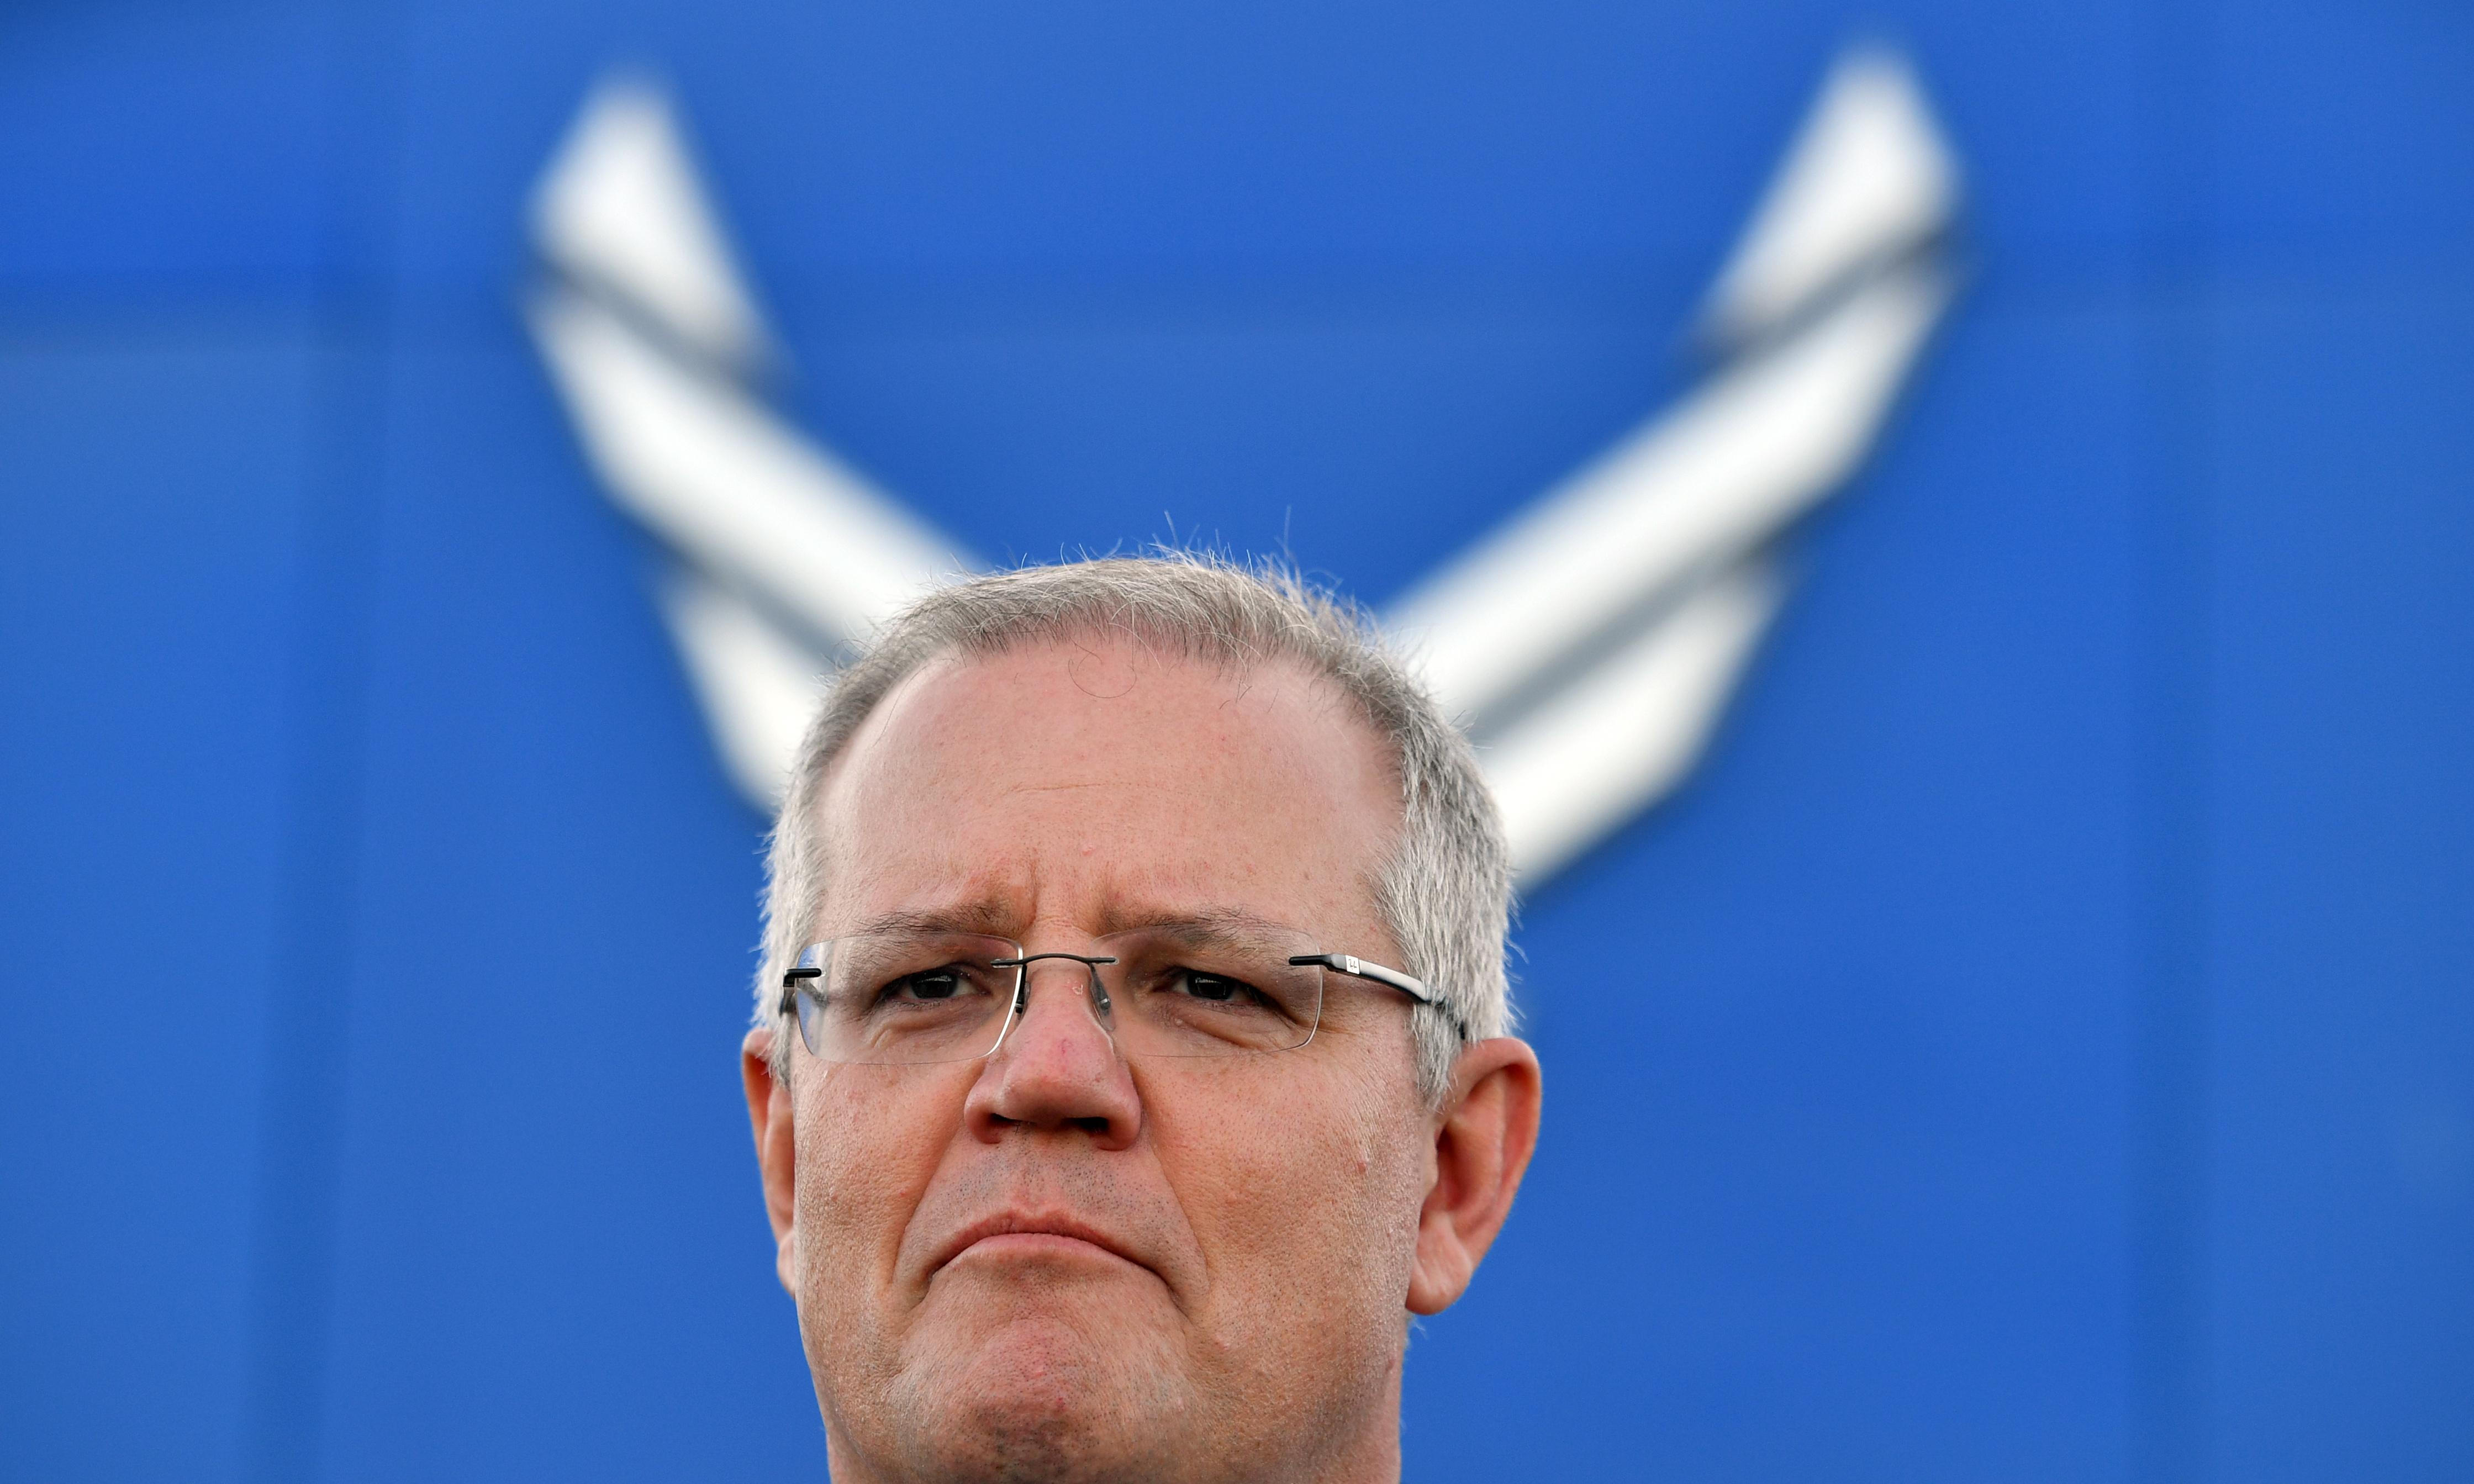 Scott Morrison lands in US promising 'another 100 years' of friendship